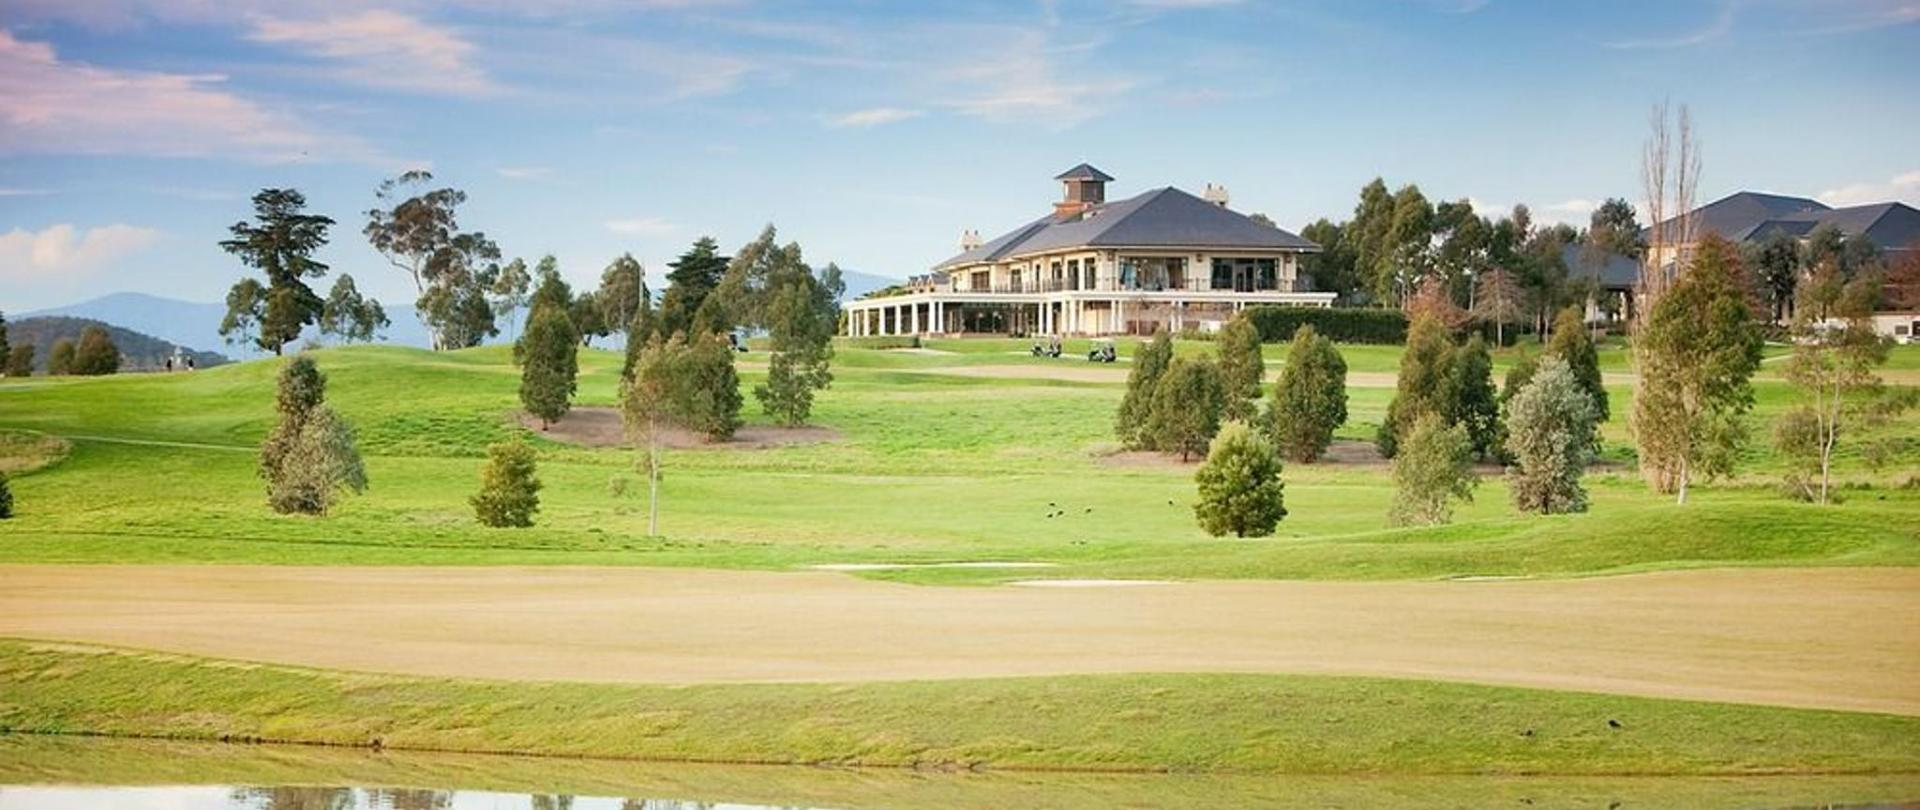 Yarra Valley Lodge Luxury Accommodation Wedding Conference Venue